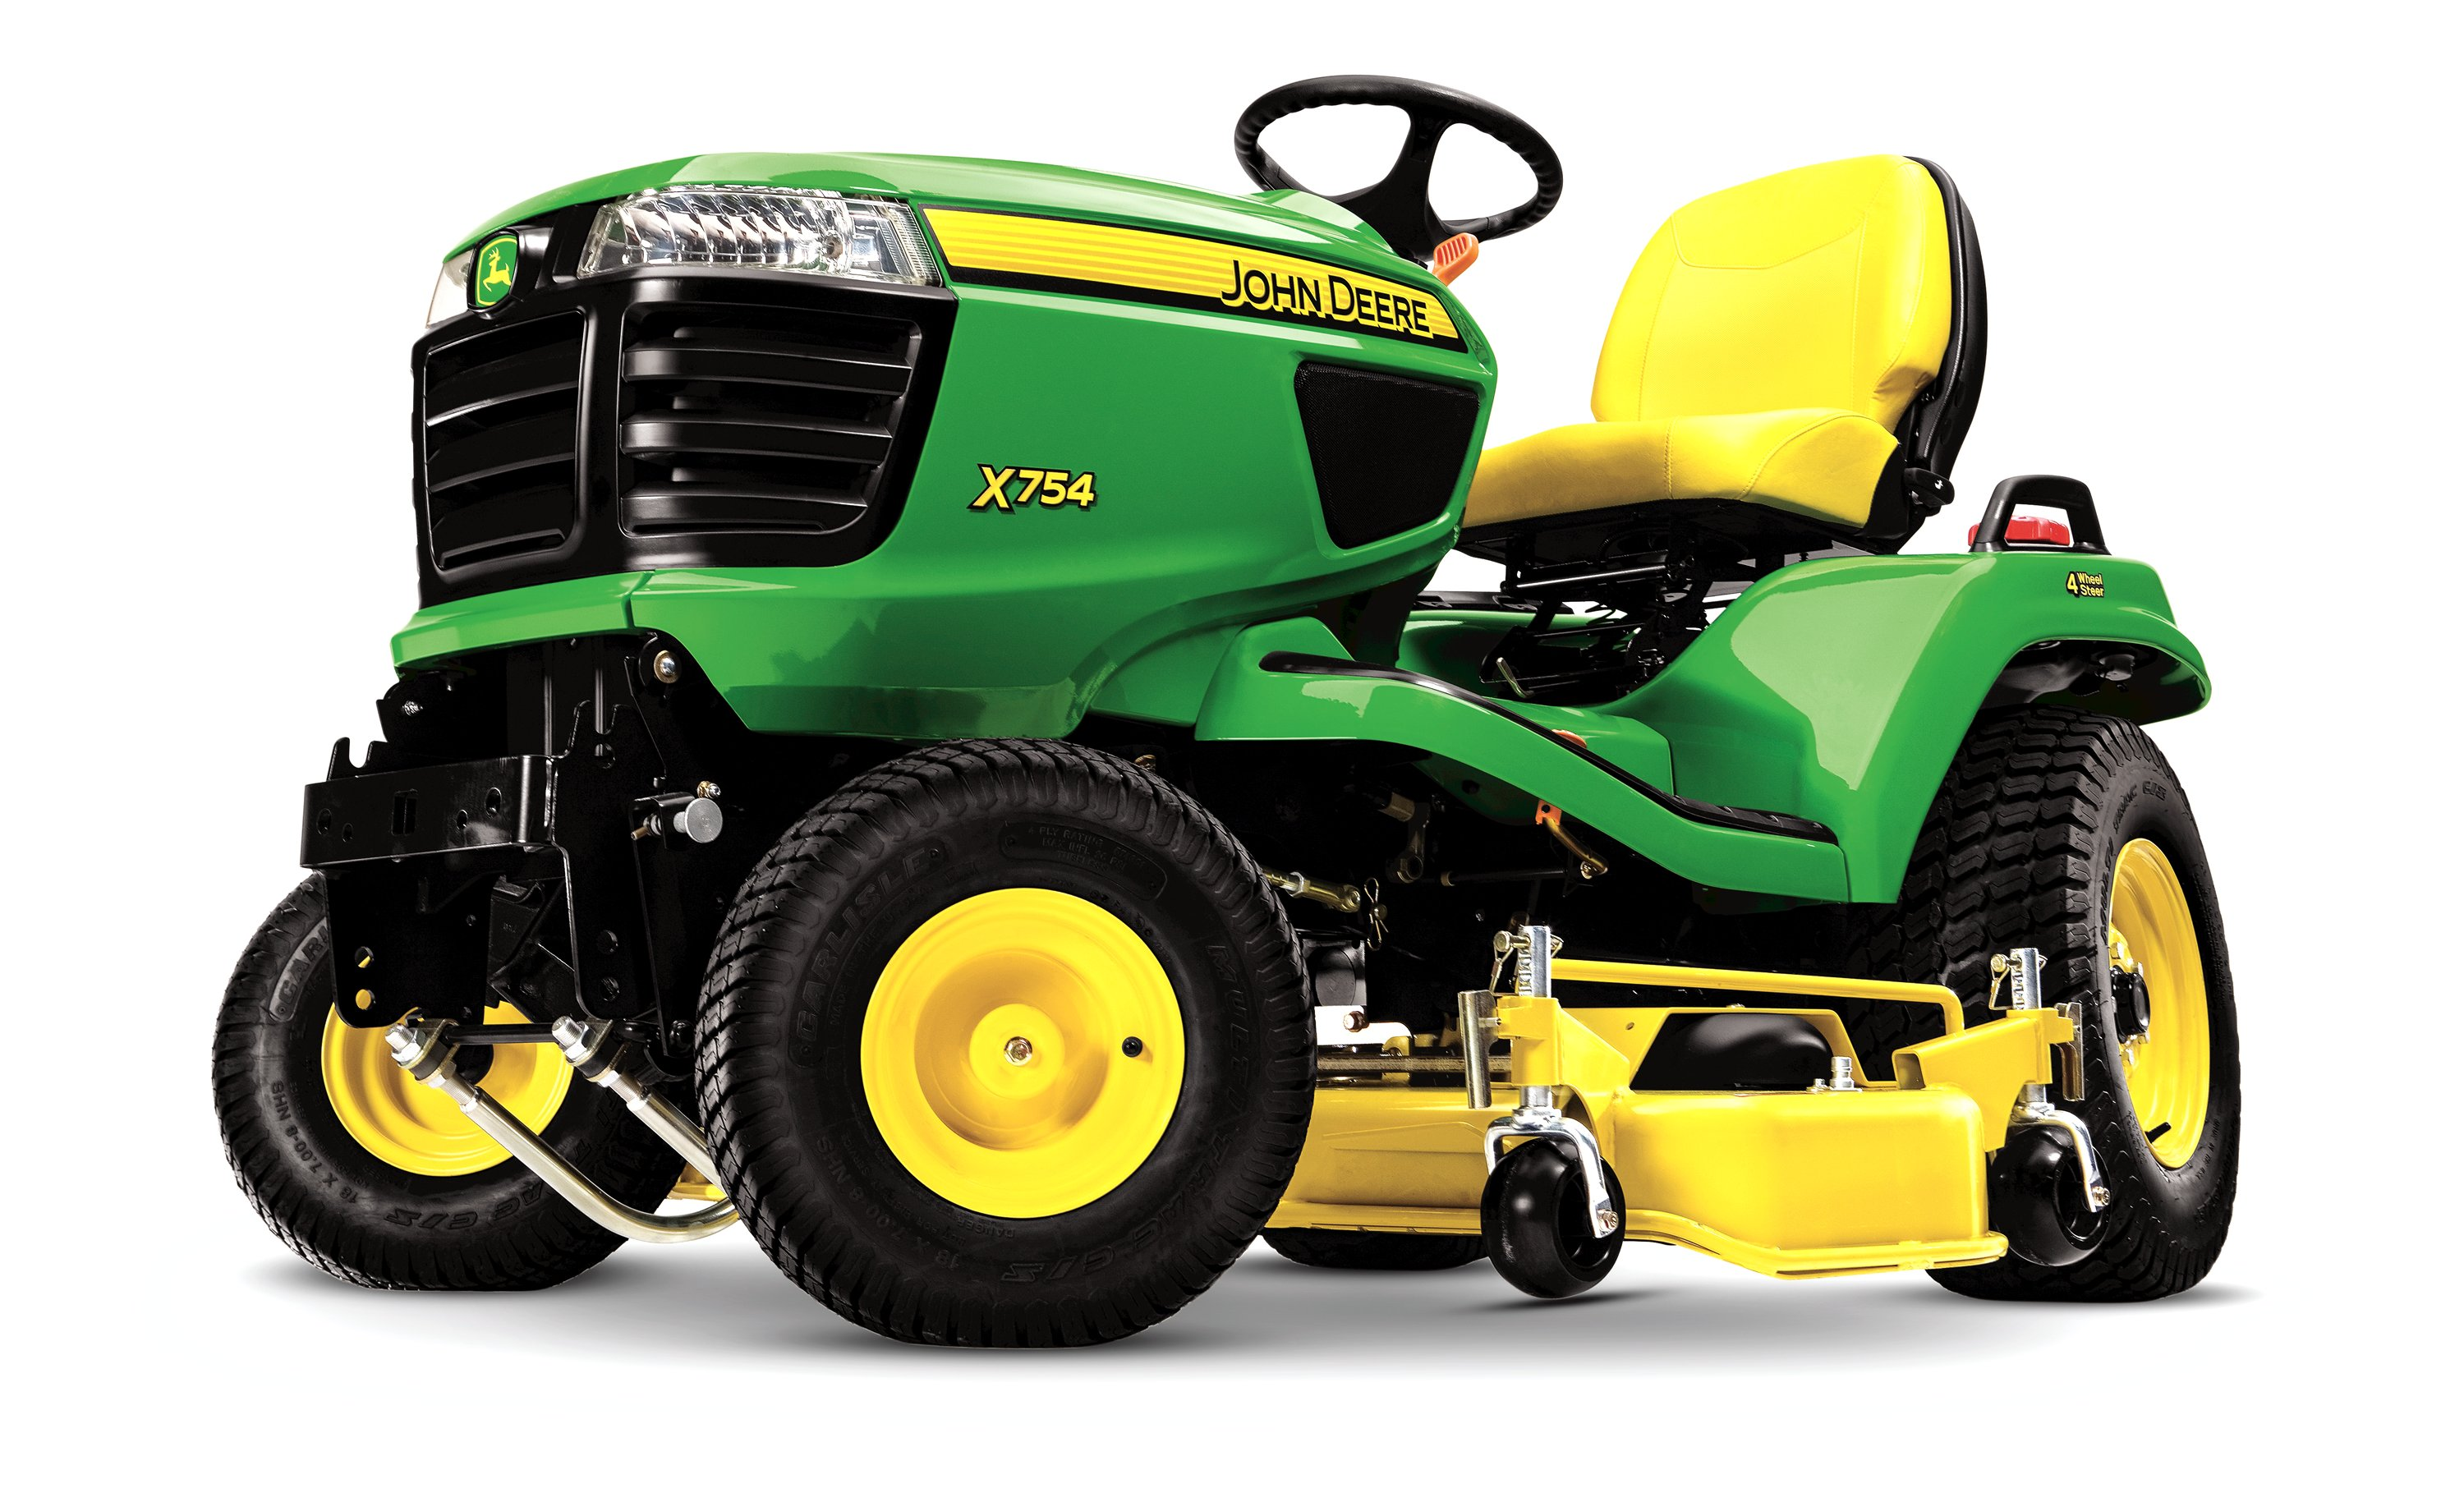 John Deere launches new X700 diesel lawn tractors | Pitchcare